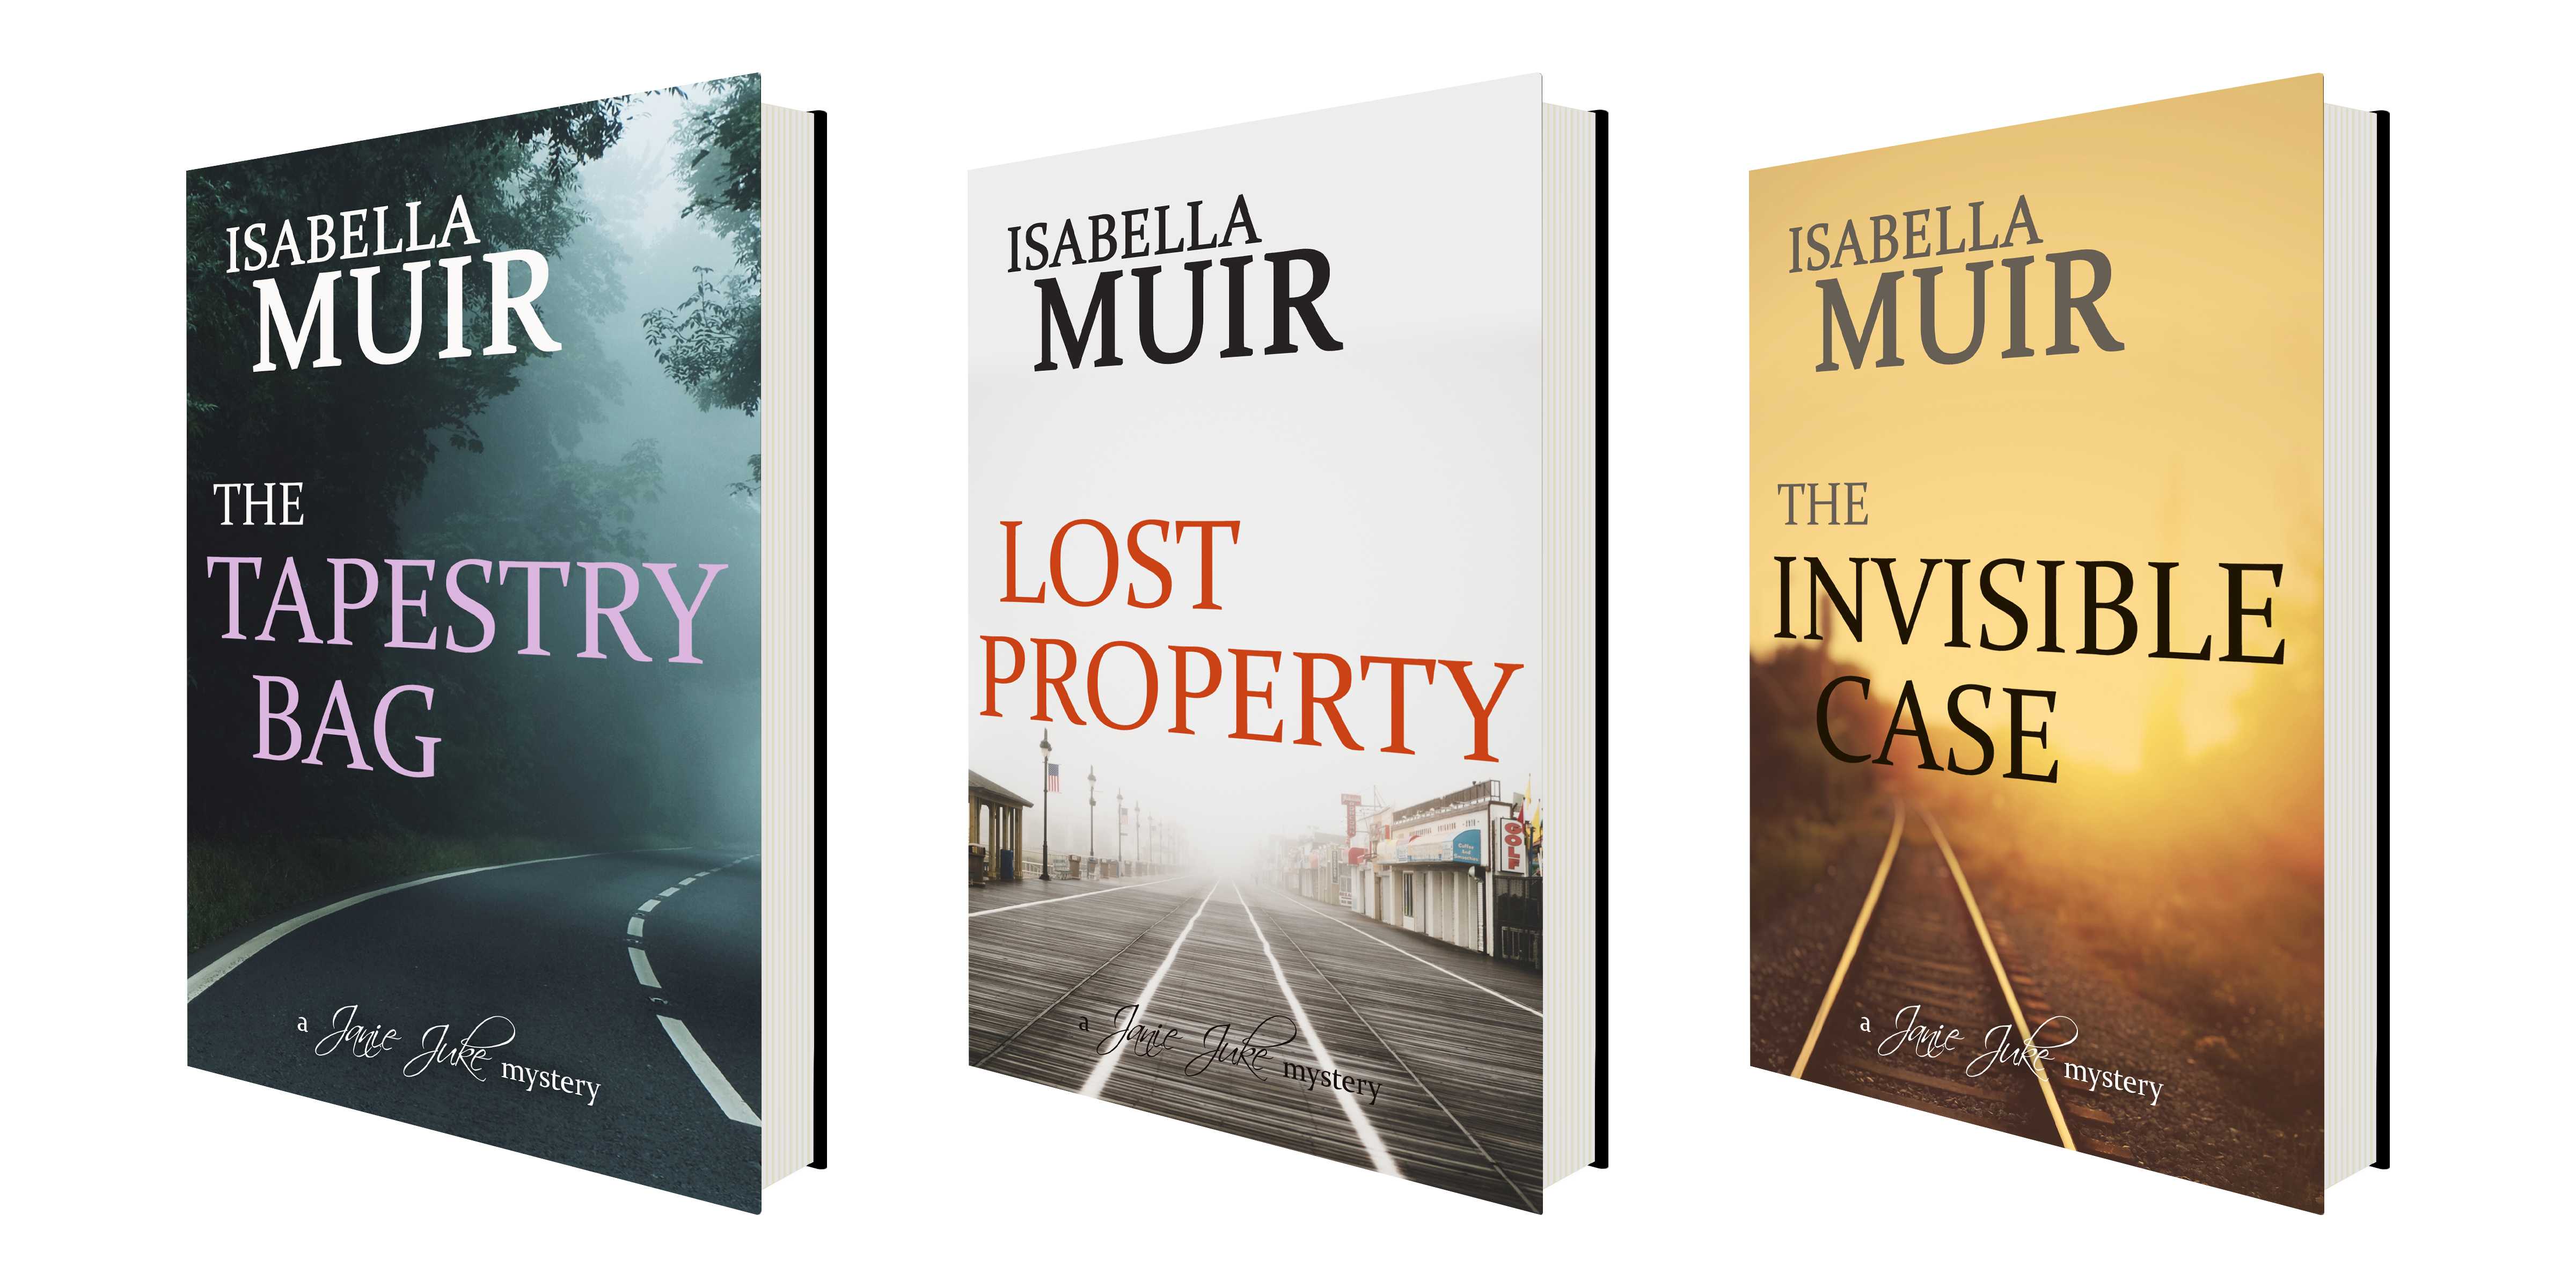 Isabella Muir 3D COVERS x 3